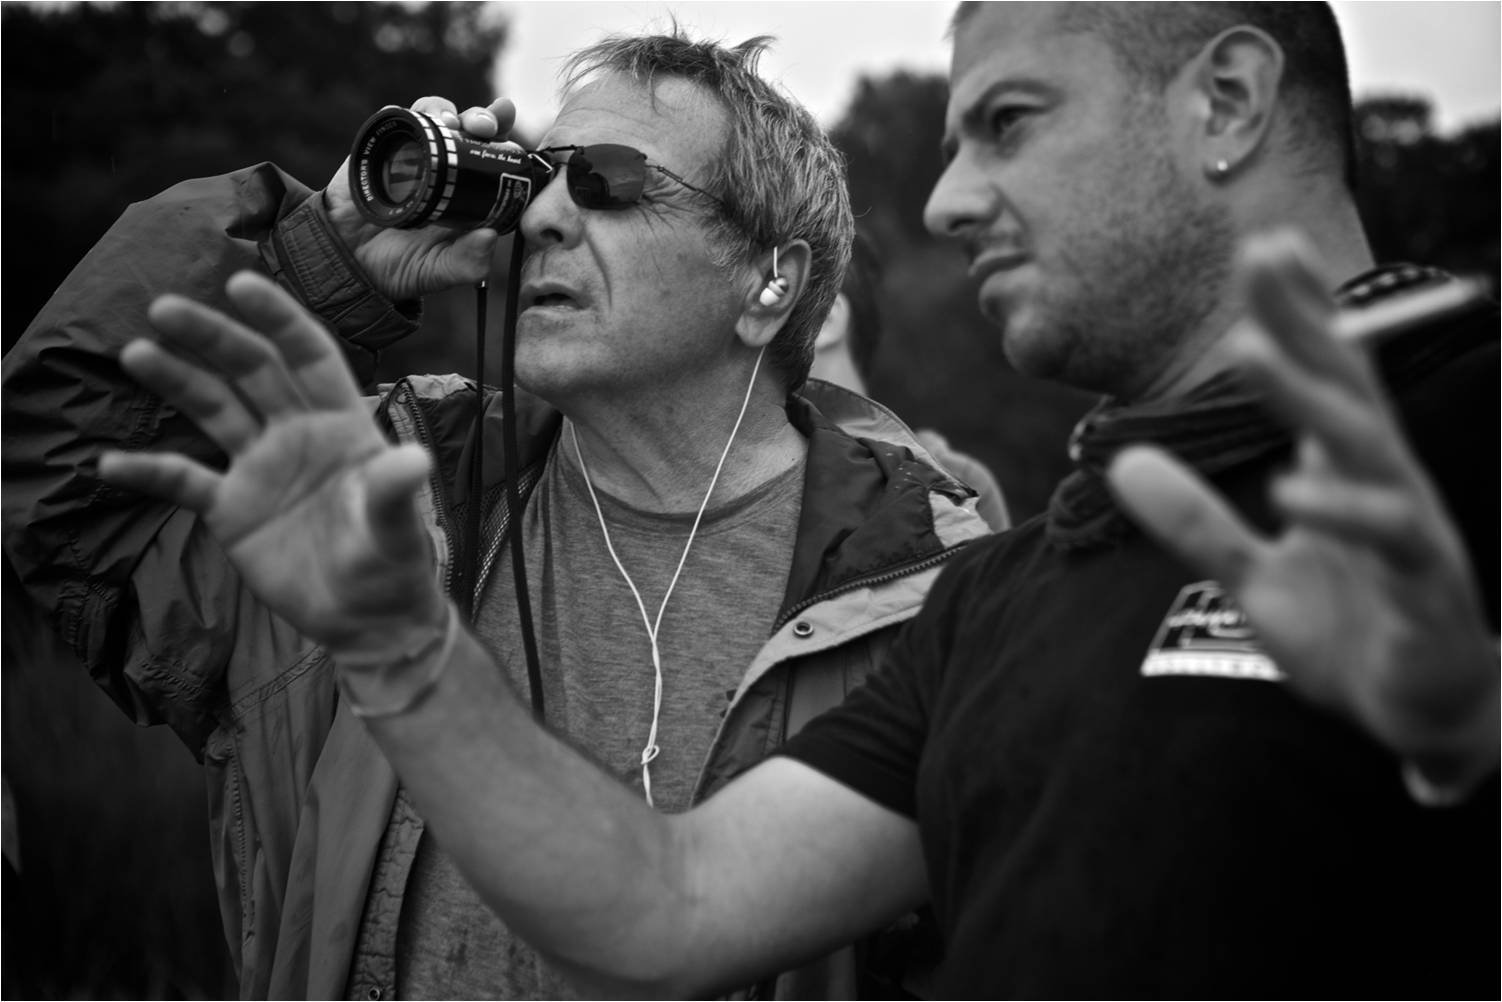 Director David Anspaugh and cinematographer Mihai Malaimare Jr. survey the beautiful scenery of Charleston, SC, in search of that perfect shot.